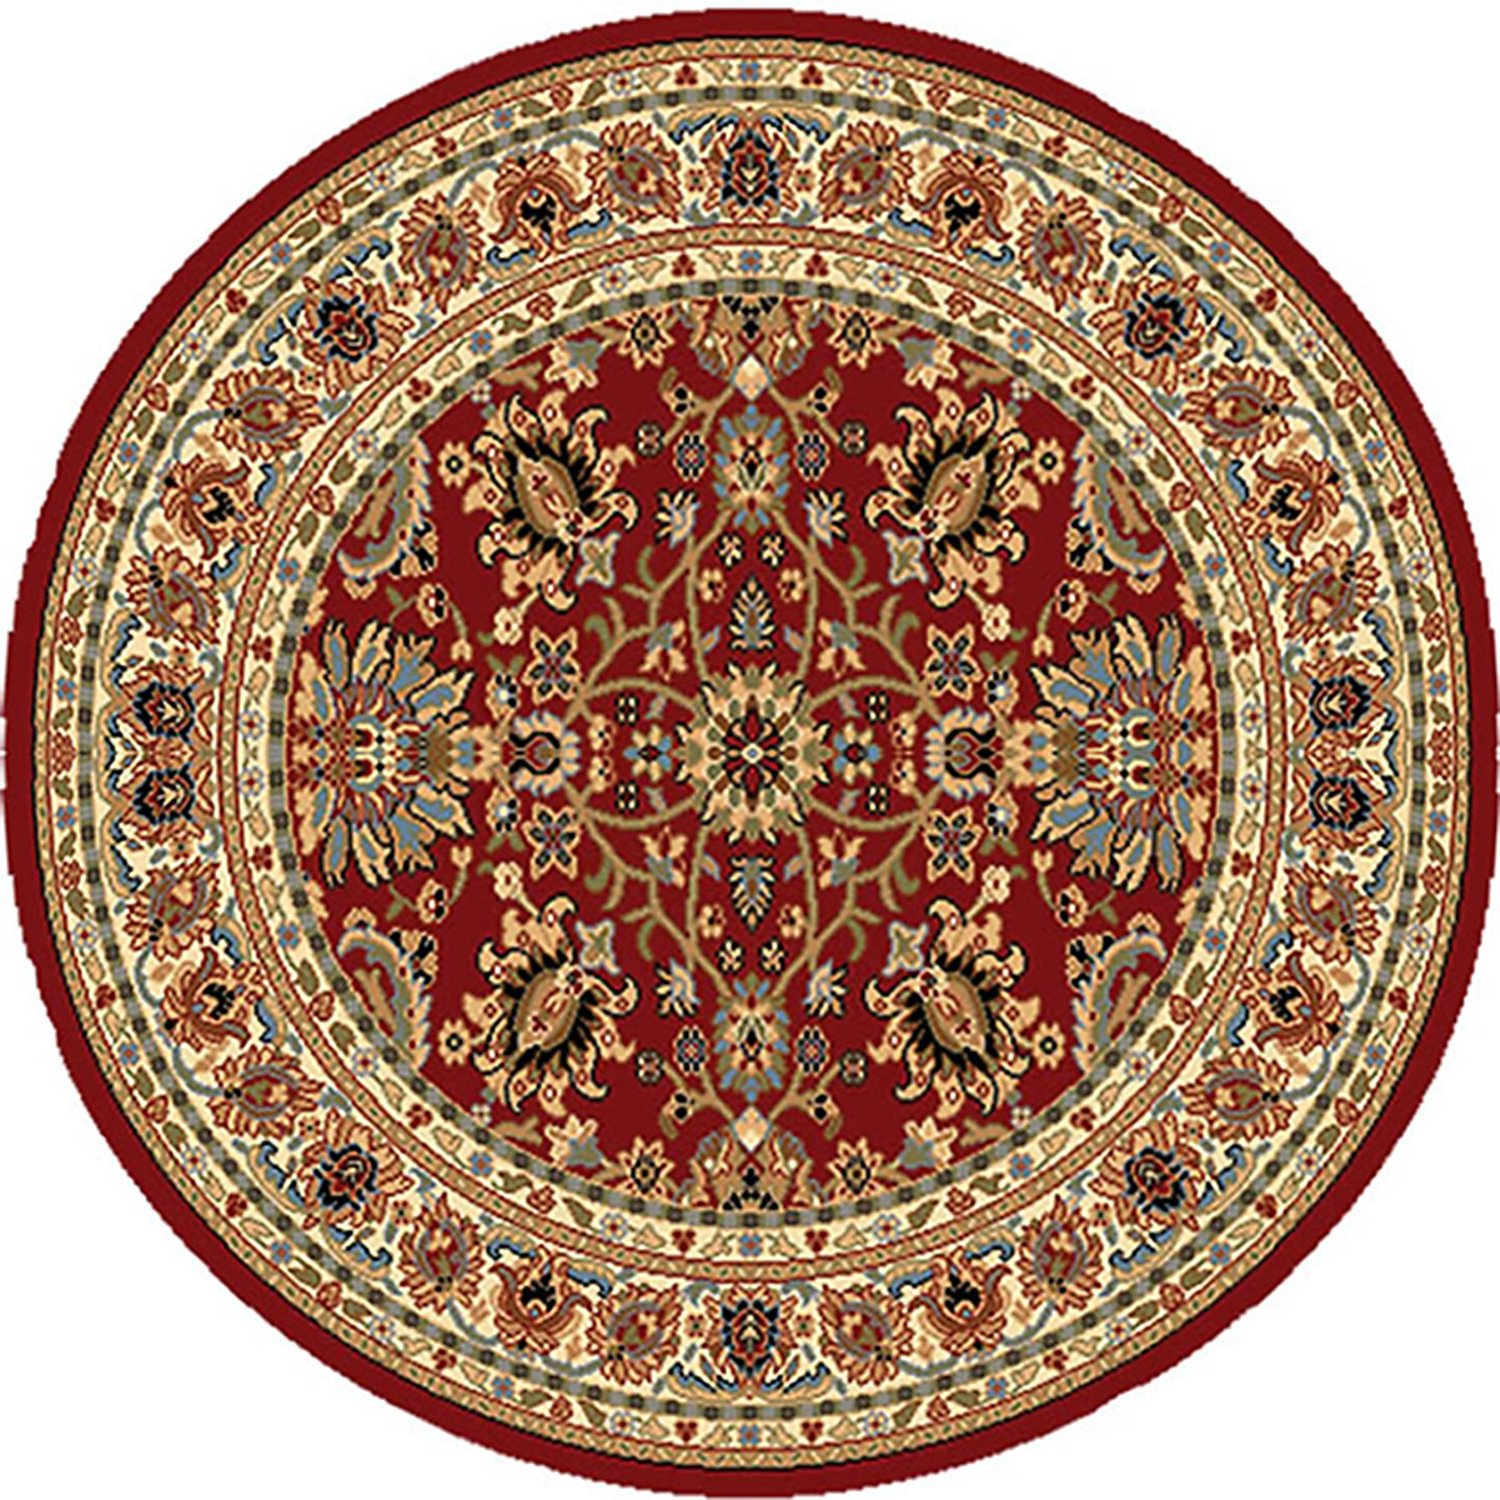 Red Oriental Round Area Rug 5x5 Bordered Floral Carpet